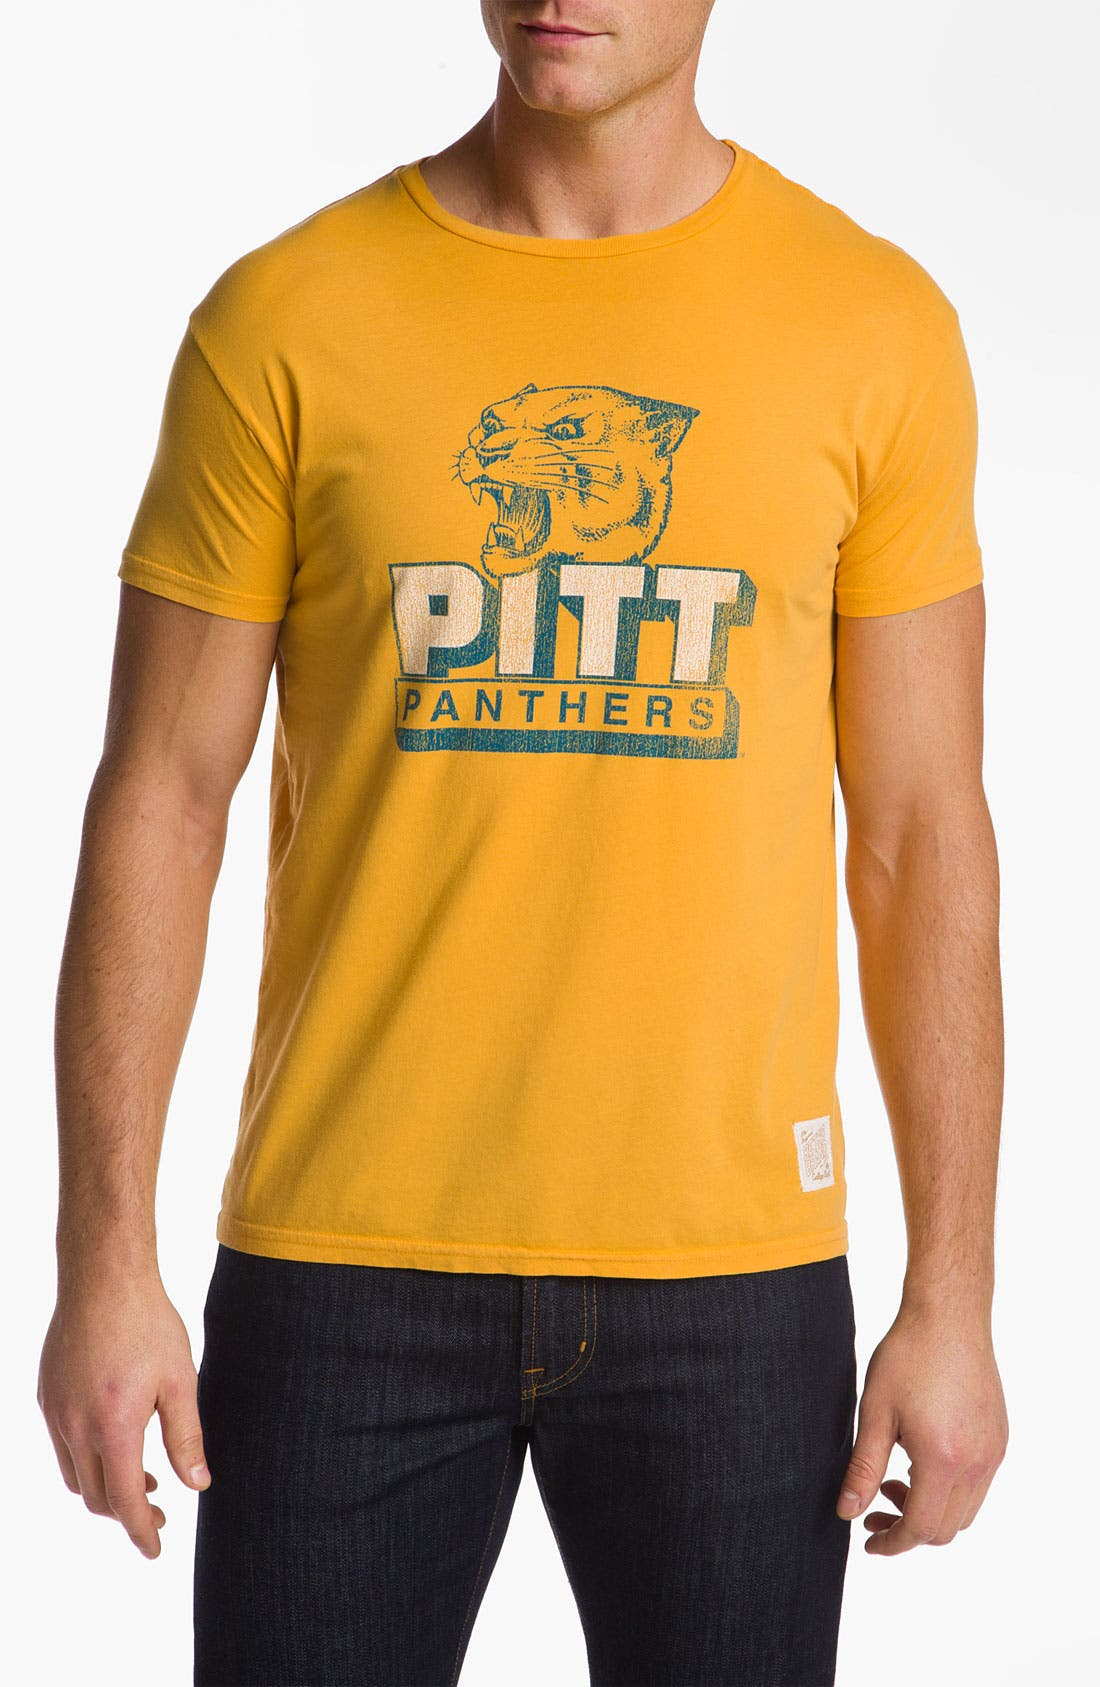 Alternate Image 1 Selected - The Original Retro Brand 'Pittsburgh Panthers' T-Shirt